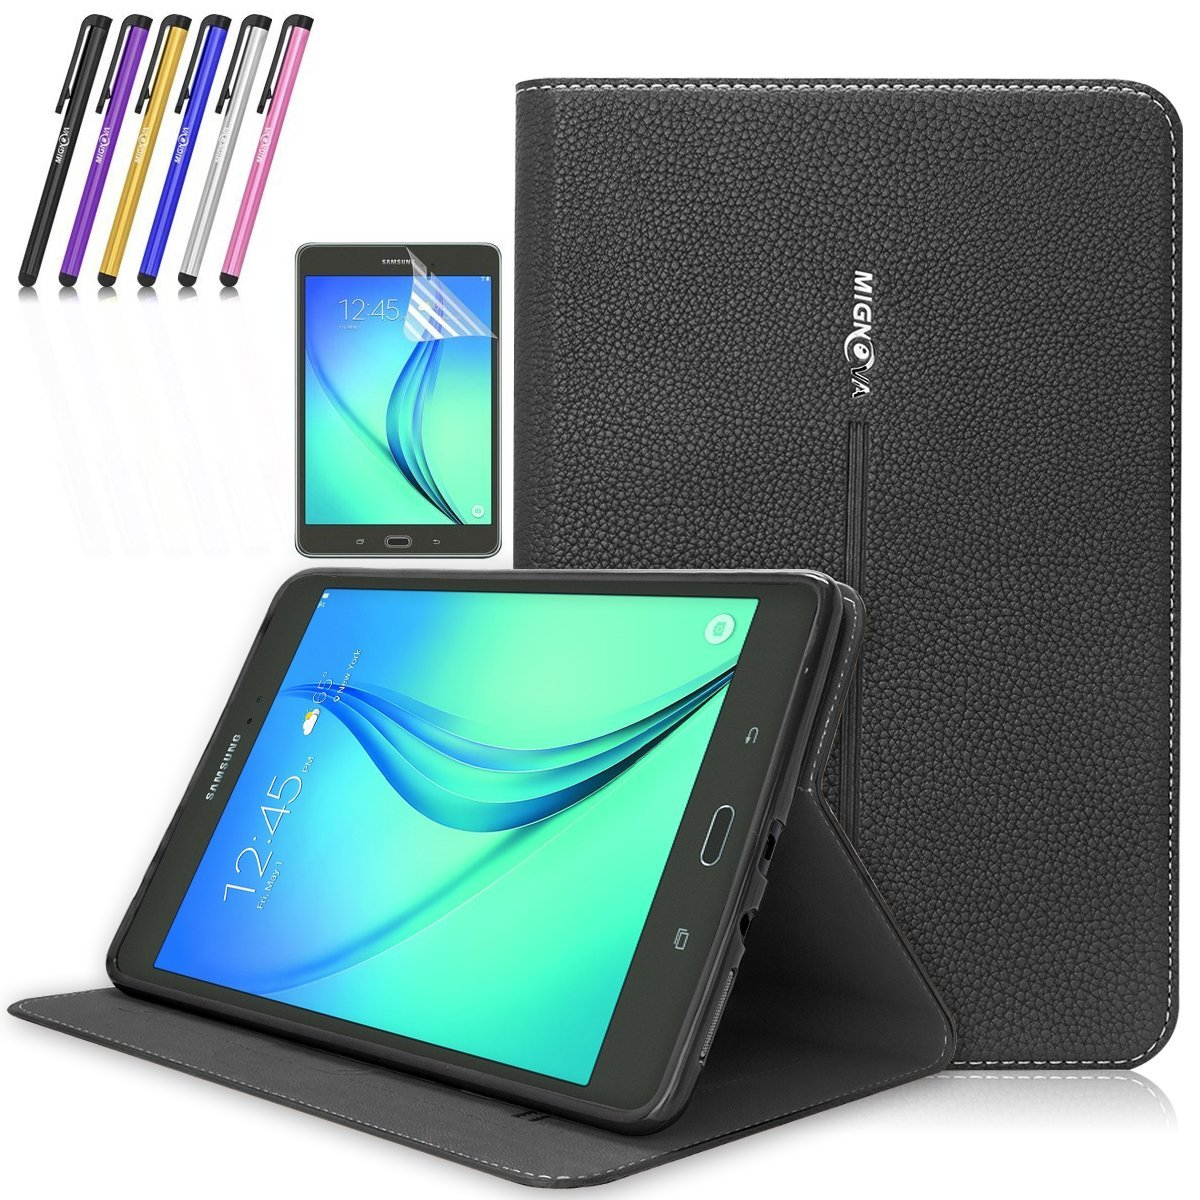 Galaxy Tab A 8.0 Case, Mignova Premium PU Leather Folio Case Smart Cover with Auto Sleep / Wake for Samsung Galaxy Tab A 8.0 Inch SM-T350 SM-P350 + Screen Protector Film and Stylus Pen (Black)